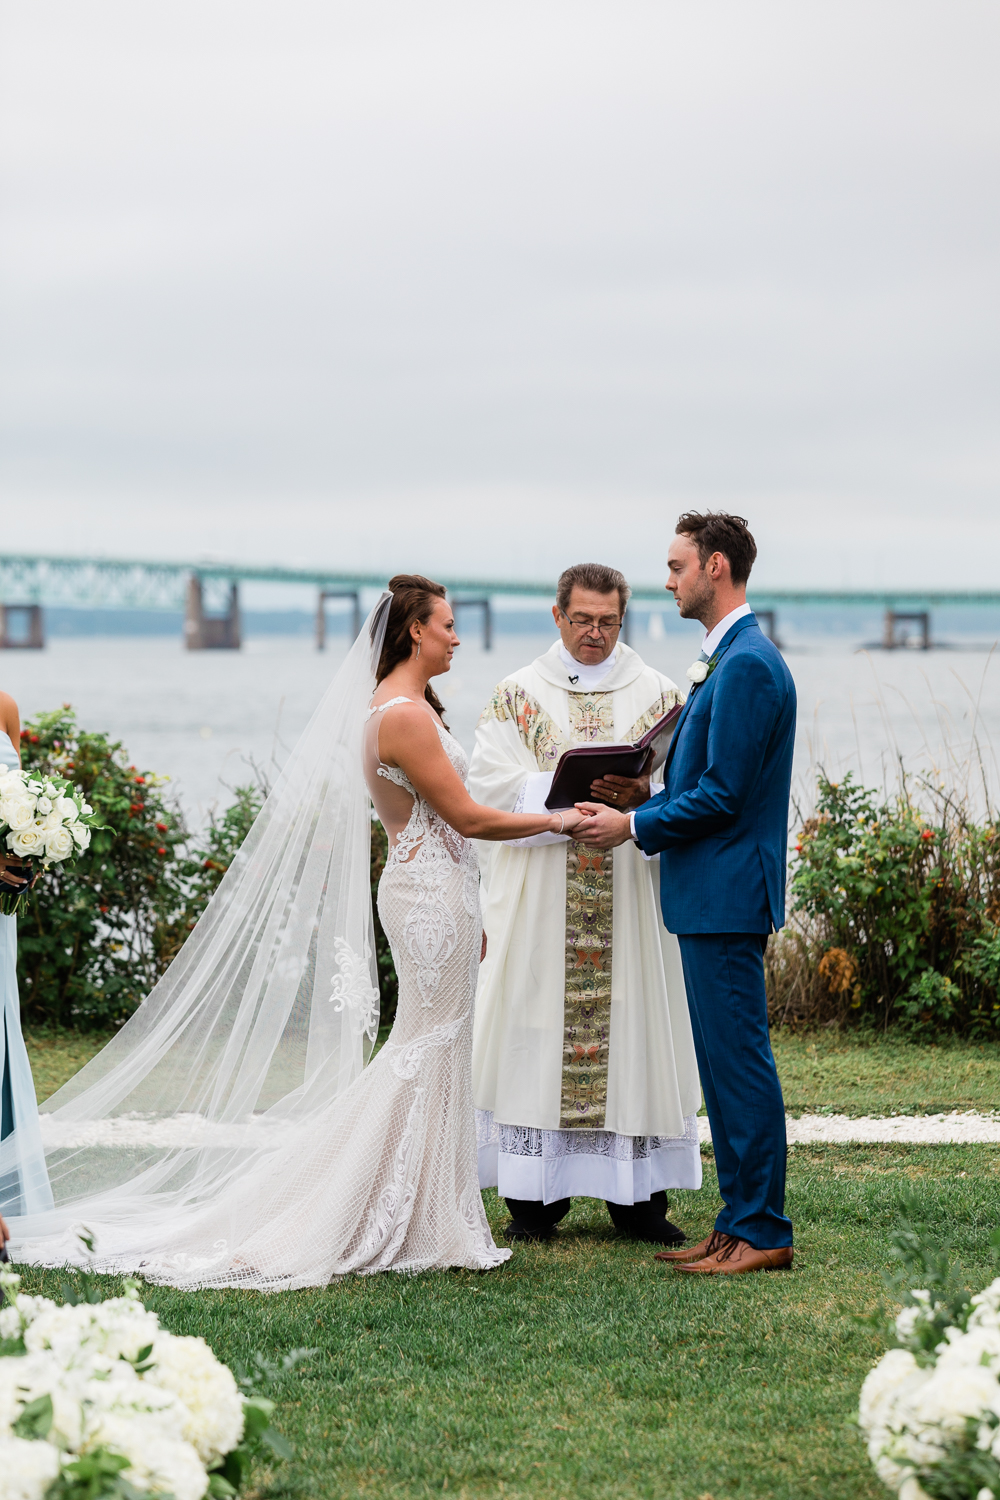 Gurney S Newport Wedding Lovely Valentine In 2020 Newport Wedding Groom And Groomsmen Attire Pnina Tornai Bridal